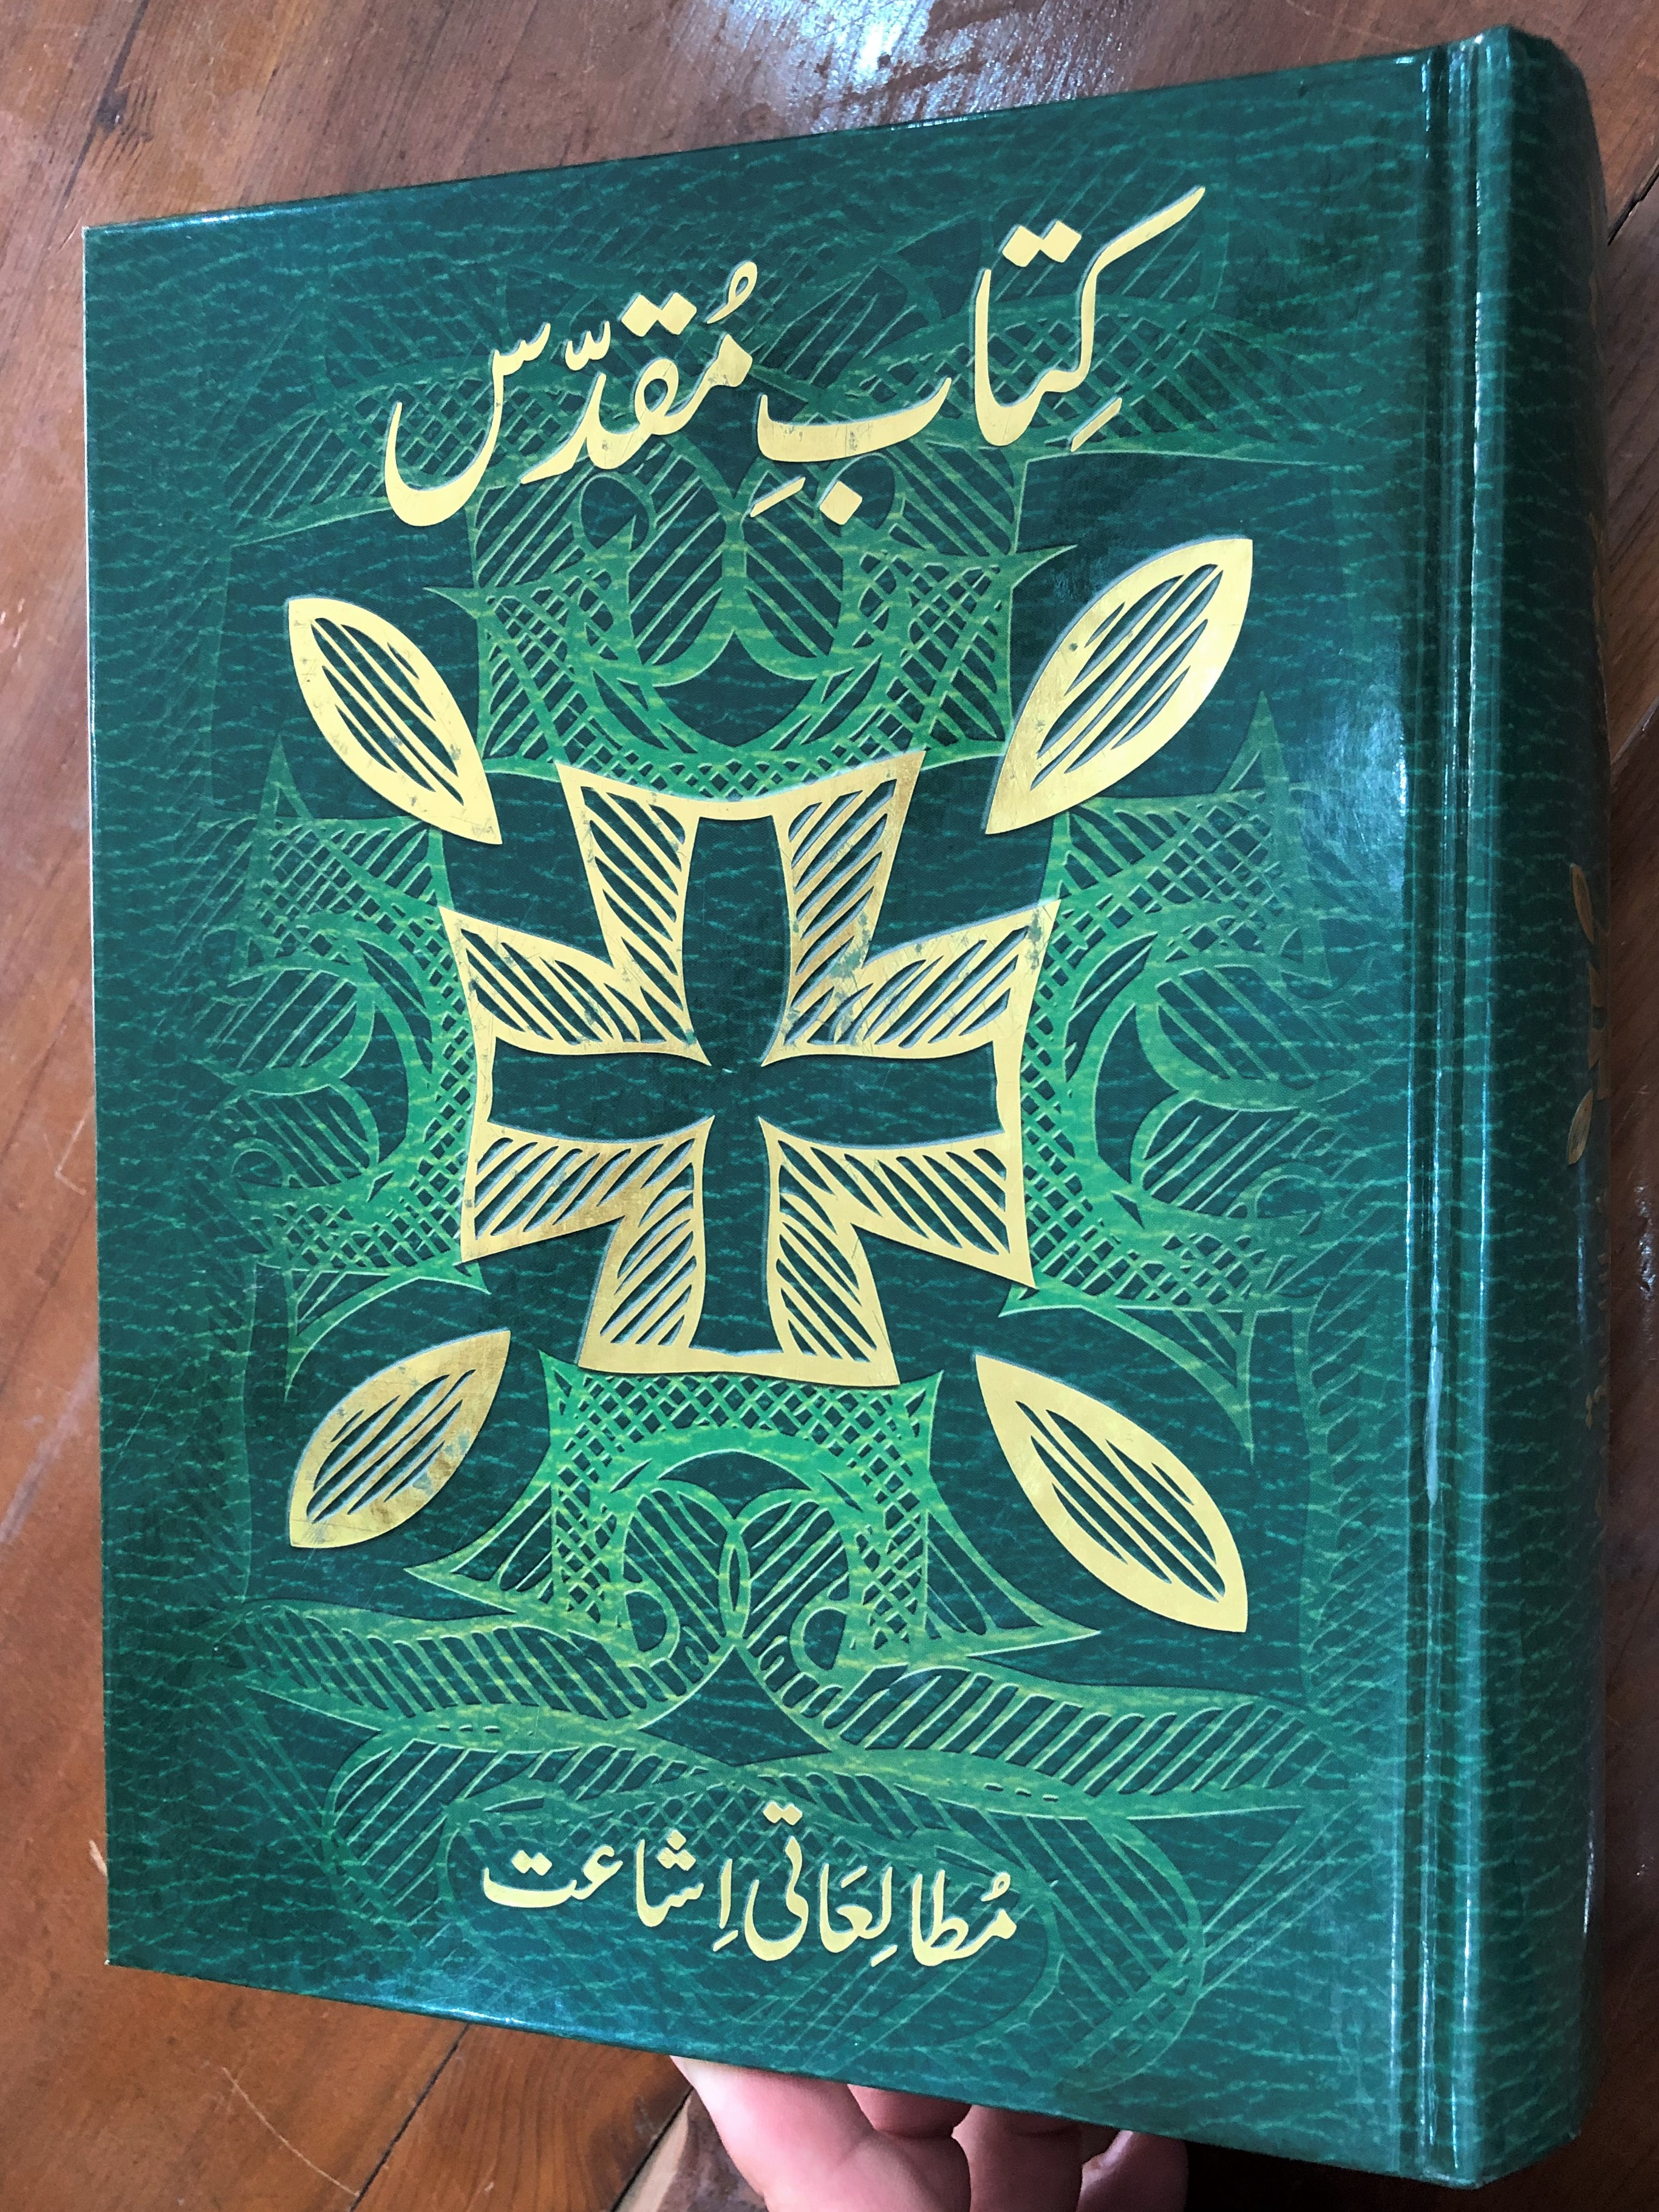 the-ultimate-urdu-study-bible-urdu-revised-version-text-3rd-edition-study-notes-charts-illustrations-and-16-color-maps-pakistan-bible-society-2017-1-.jpg